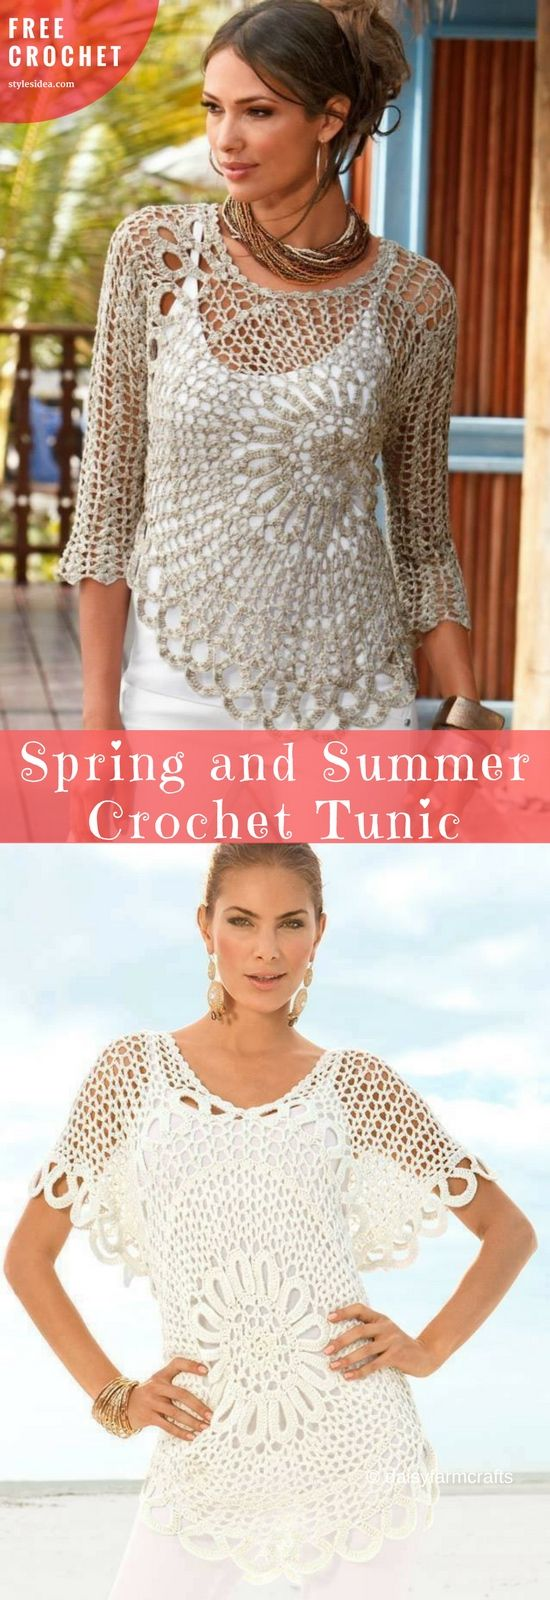 Tunics for Spring and Summer [Free Crochet] Perfect Tunics for warm seasons. Covering other clothes or simply wear it when the sun is shining and the temperature is very high. #crochettunic #crochetfreepattern